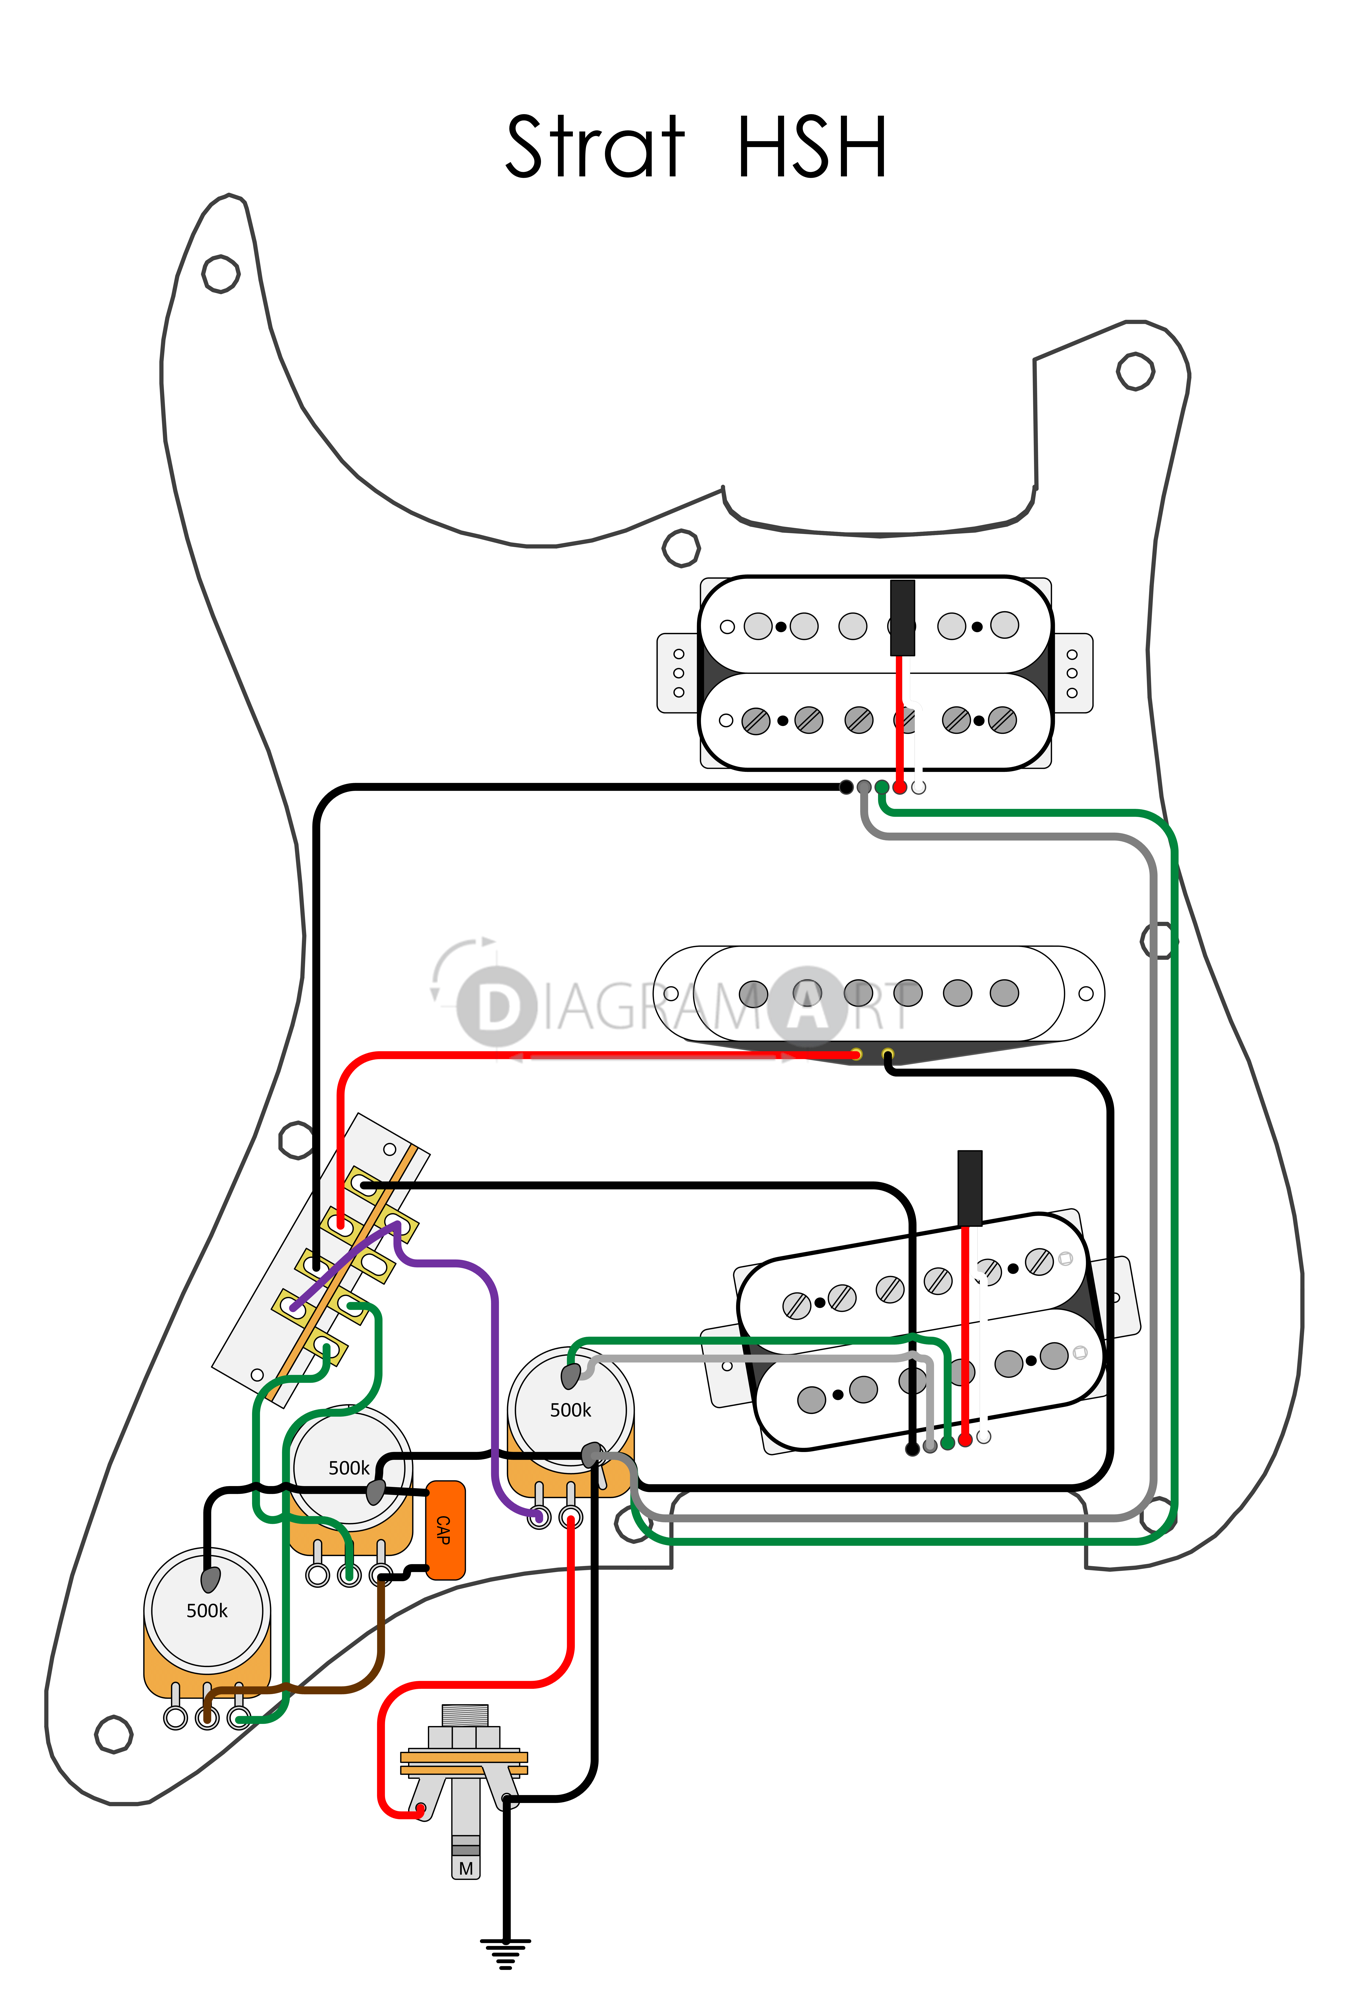 fender stratocaster hsh wiring diagram all wiring diagram ese strat wiring diagram wiring diagram libraries 5 way strat switch wiring diagram cdn shopify